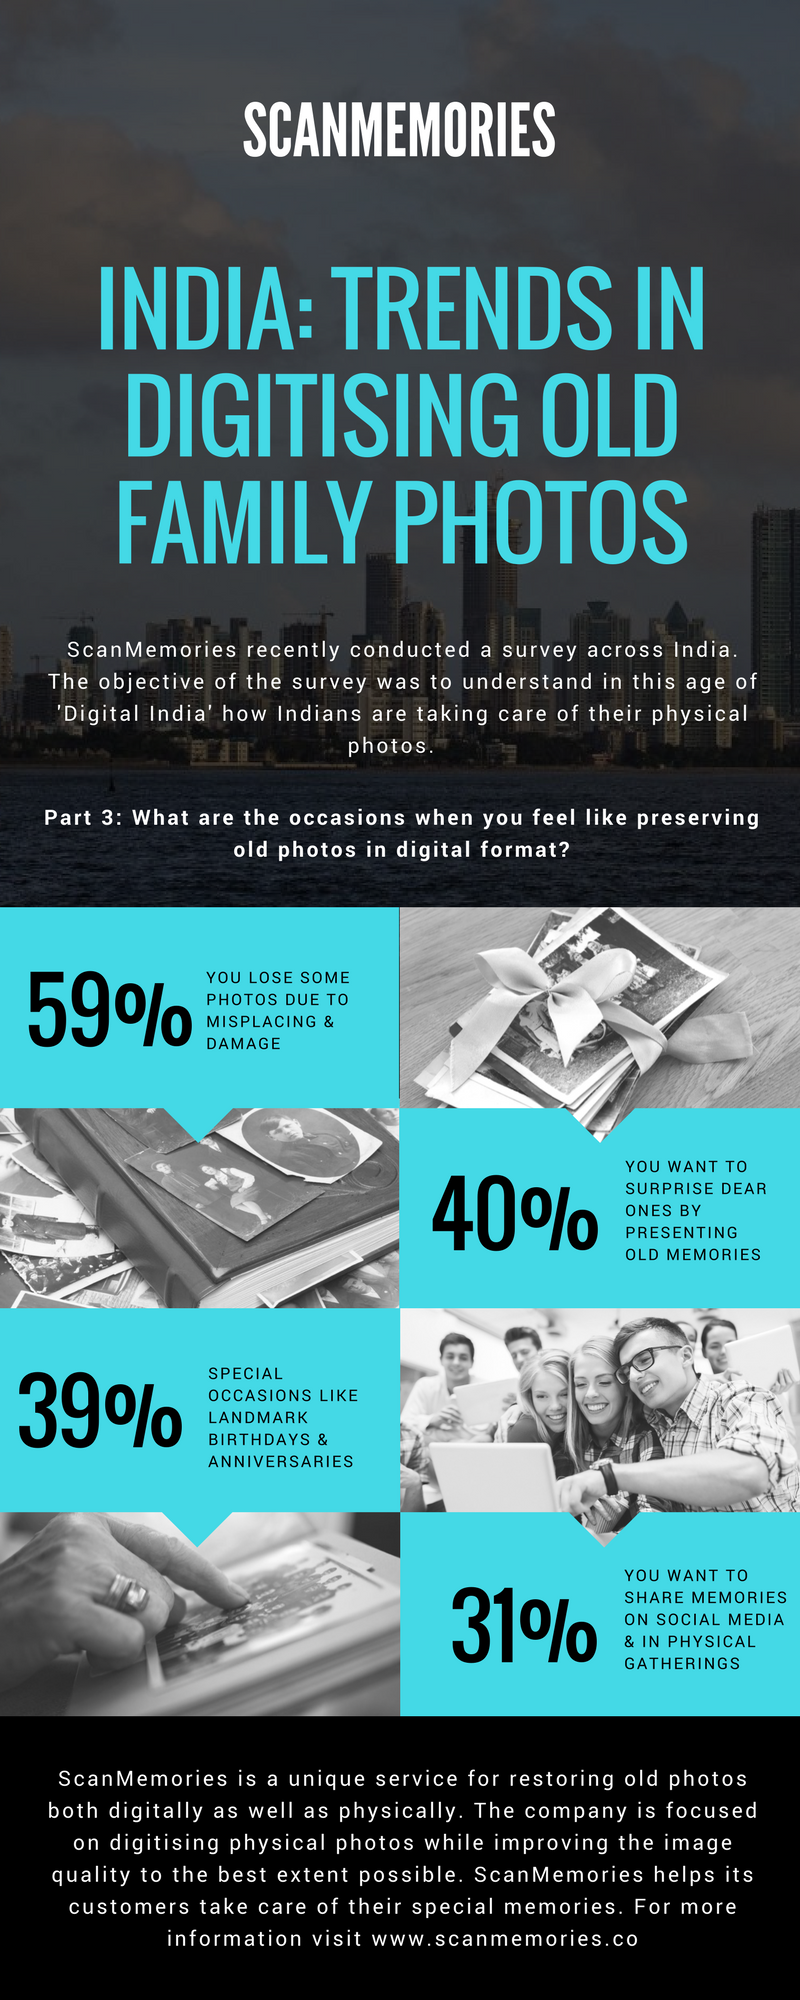 India trends in digitising photos part3